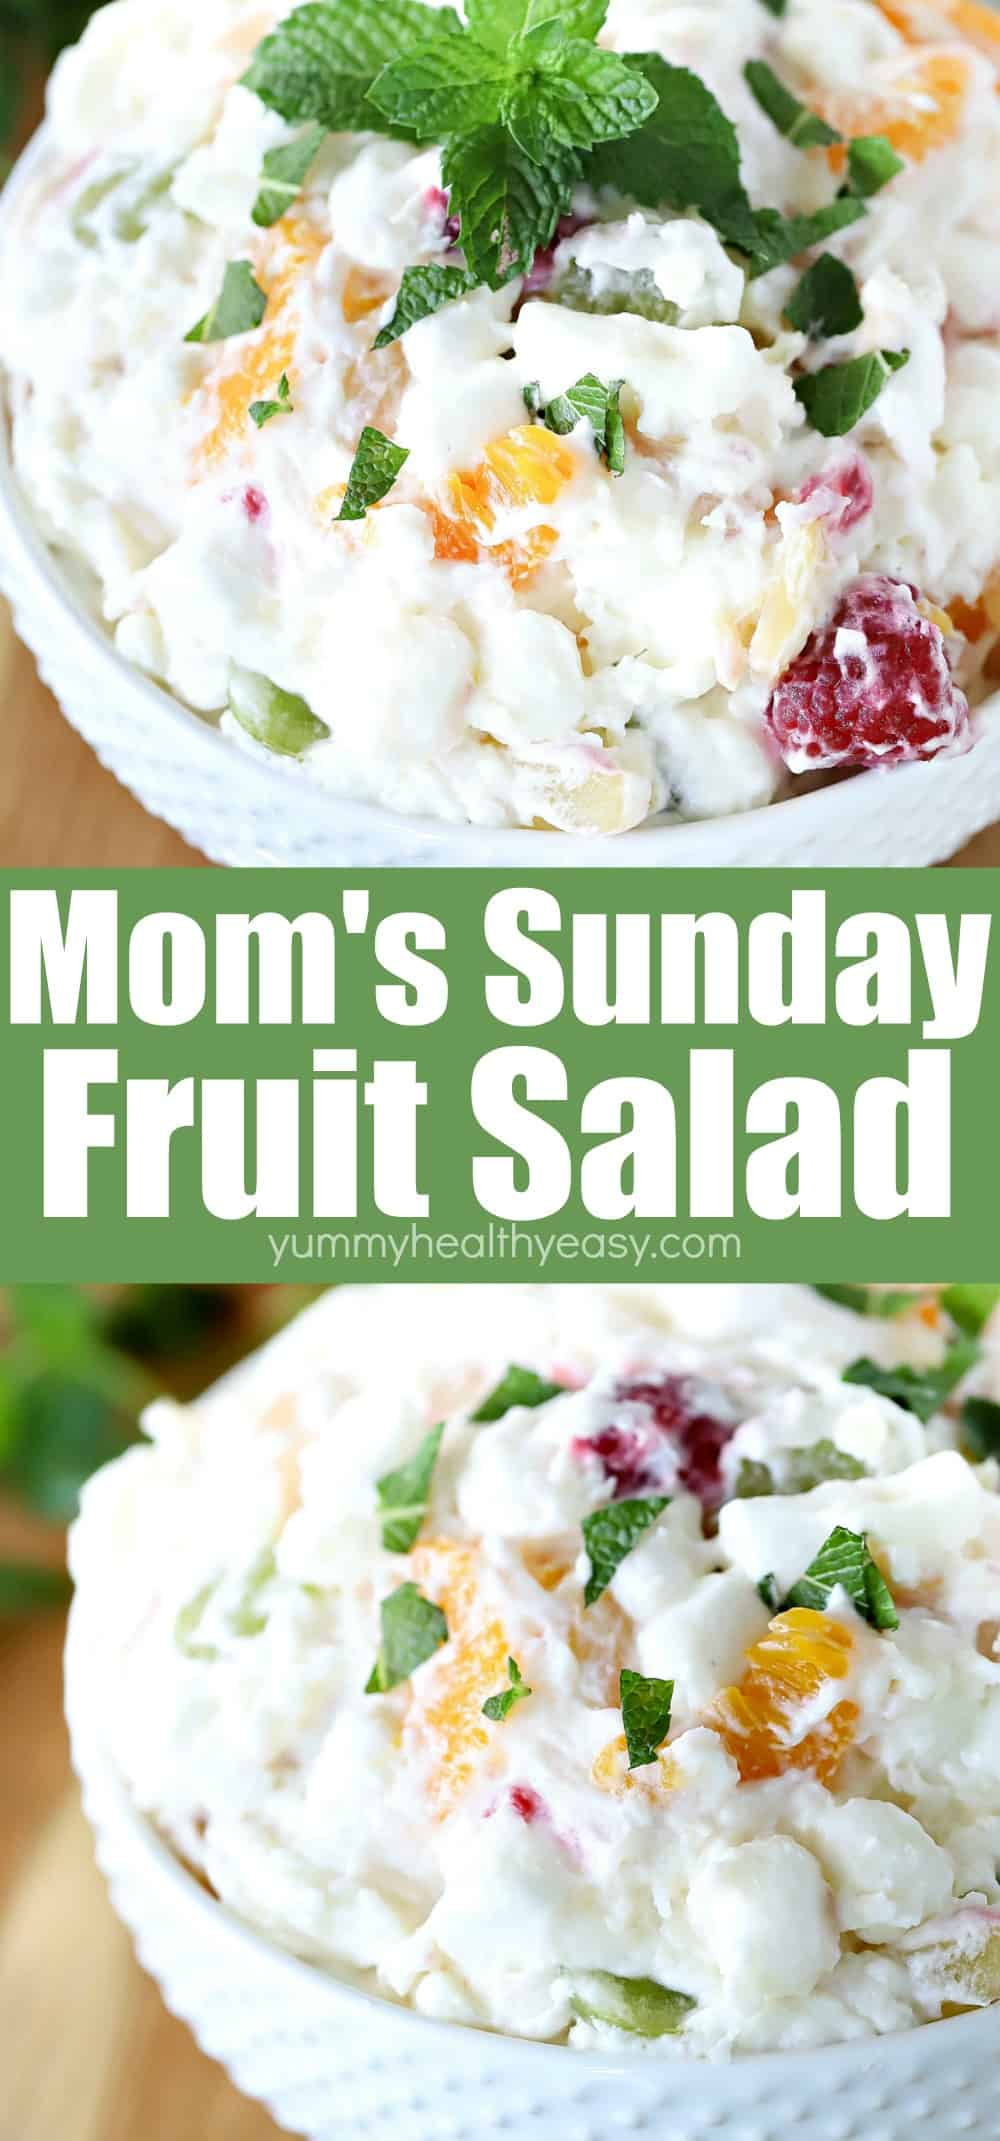 This recipe is a family favorite my mom prepared often. Mostly to go with our big Sunday dinners {hence the name!} but you can make it any day of the week! It's creamy and versatile with a kick of citrus in it. It's one of my all time favorites to make for my family. You can add any fruit or mix-ins that your family likes. It's a yummy and simple side dish that compliments any meal! #fruitsalad #fruit #recipe #yummy #healthy #easy #yummyhealthyeasy #homemade via @jennikolaus